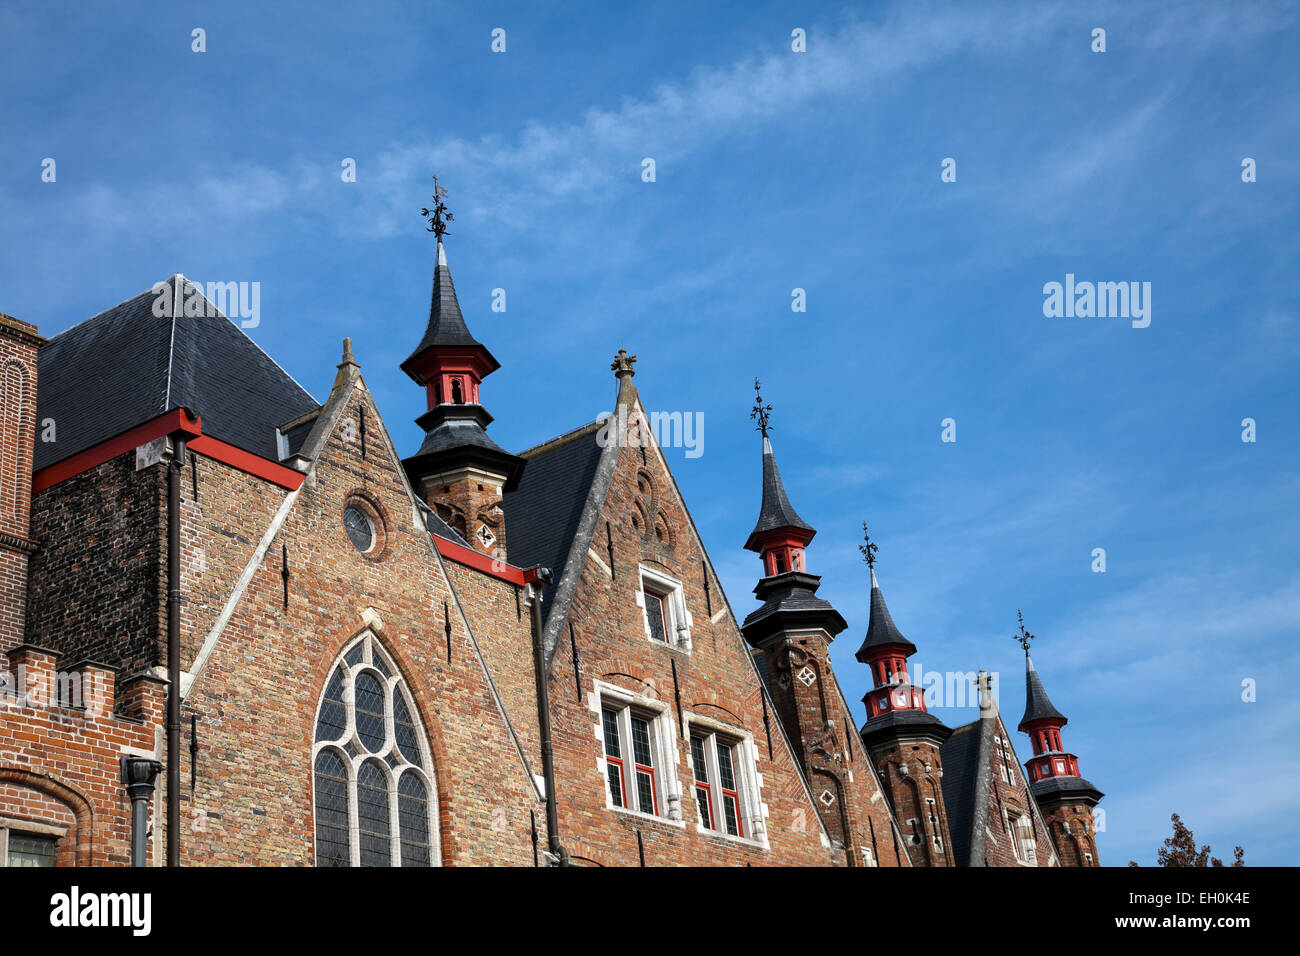 Fanciful architecture, much of it dating from the town's golden age (12th-15th centuries), gives Bruges its - Stock Image